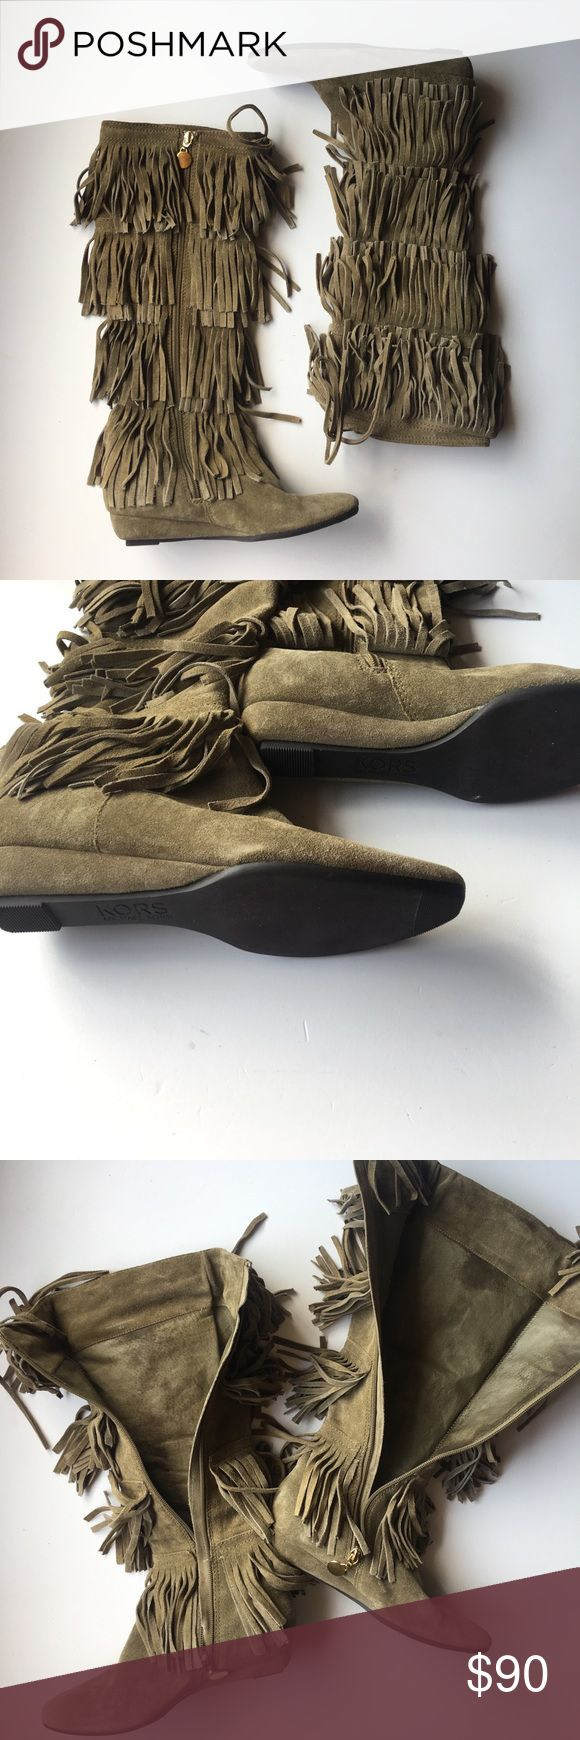 Michael Kors tan suede tall fringe boots Tan tall fringe boots with 1 inch wedge heel. Slight discoloration on lining as pictured. Very slight scuff on edge. Still very good condition Michael Kors Shoes Heeled Boots